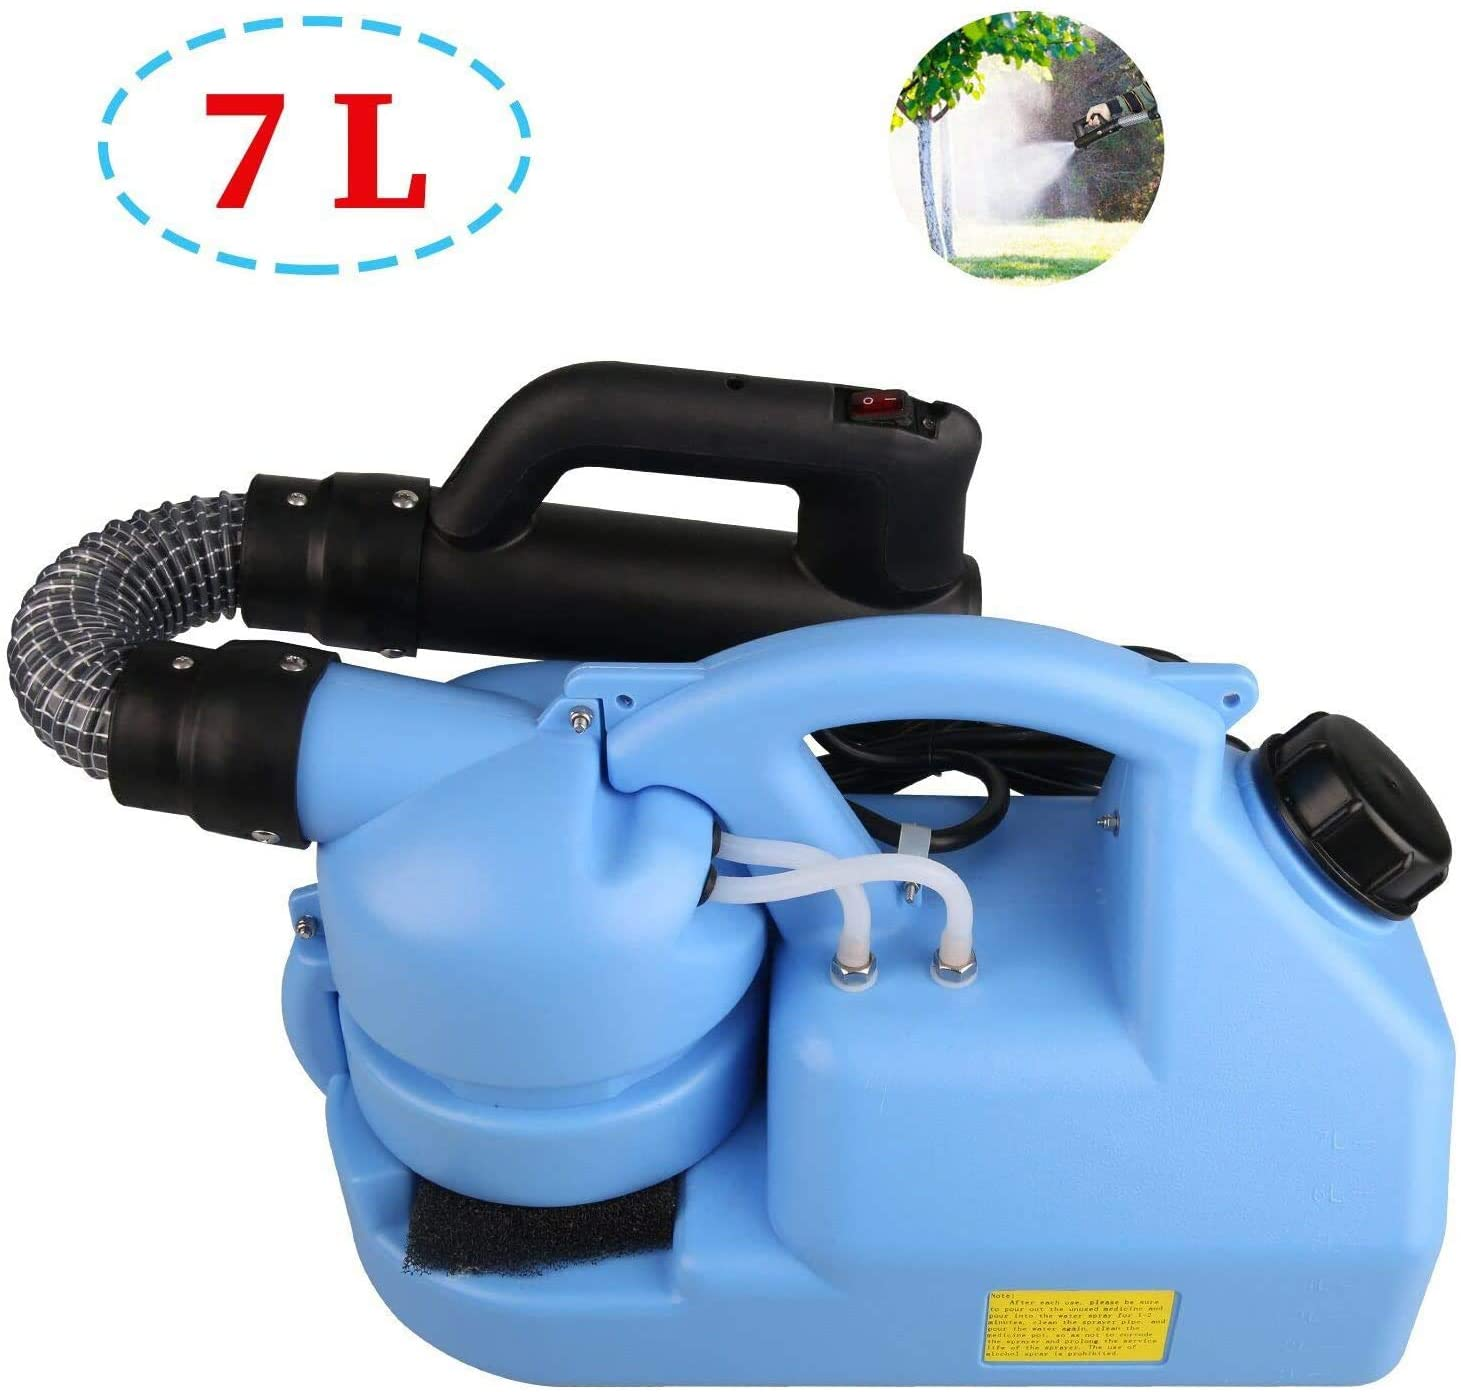 Portable Electric ULV Fogger Back Pressure Sprayer 1000W Disinfection Sprayer 7L Humidification/Disinfection/Insecticide/Atomization for Farm Office and Industrial